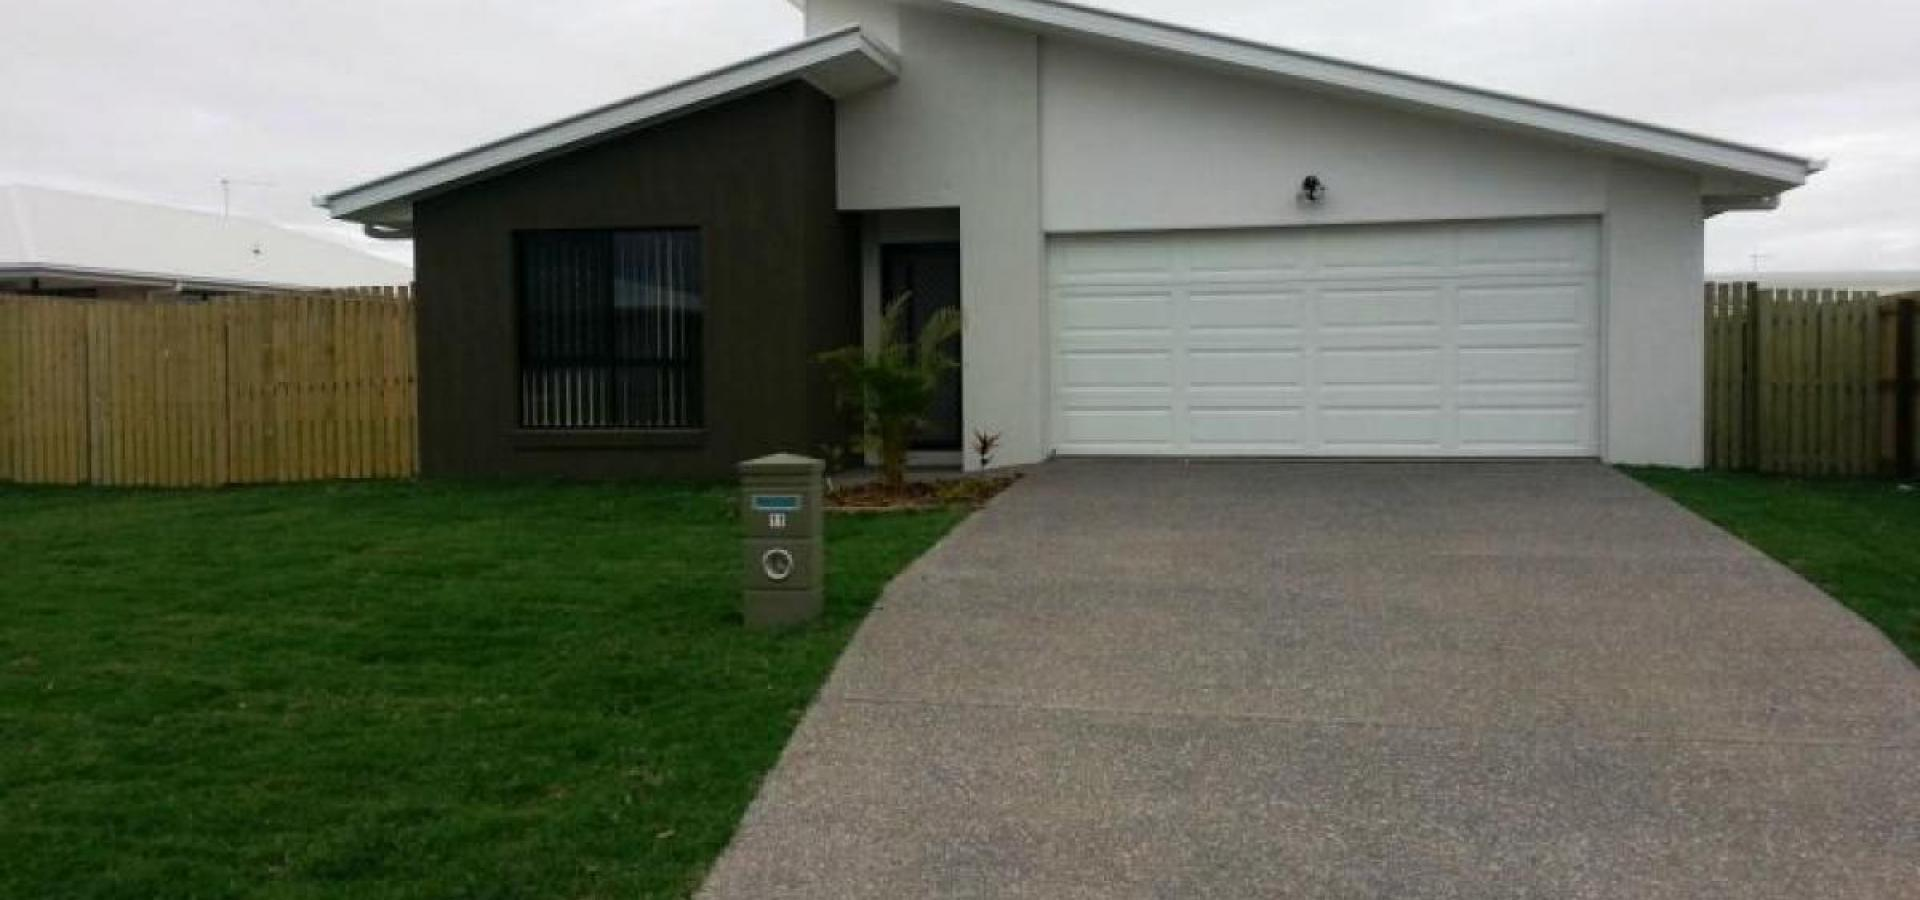 4 Bedroom Home with Room for Shed